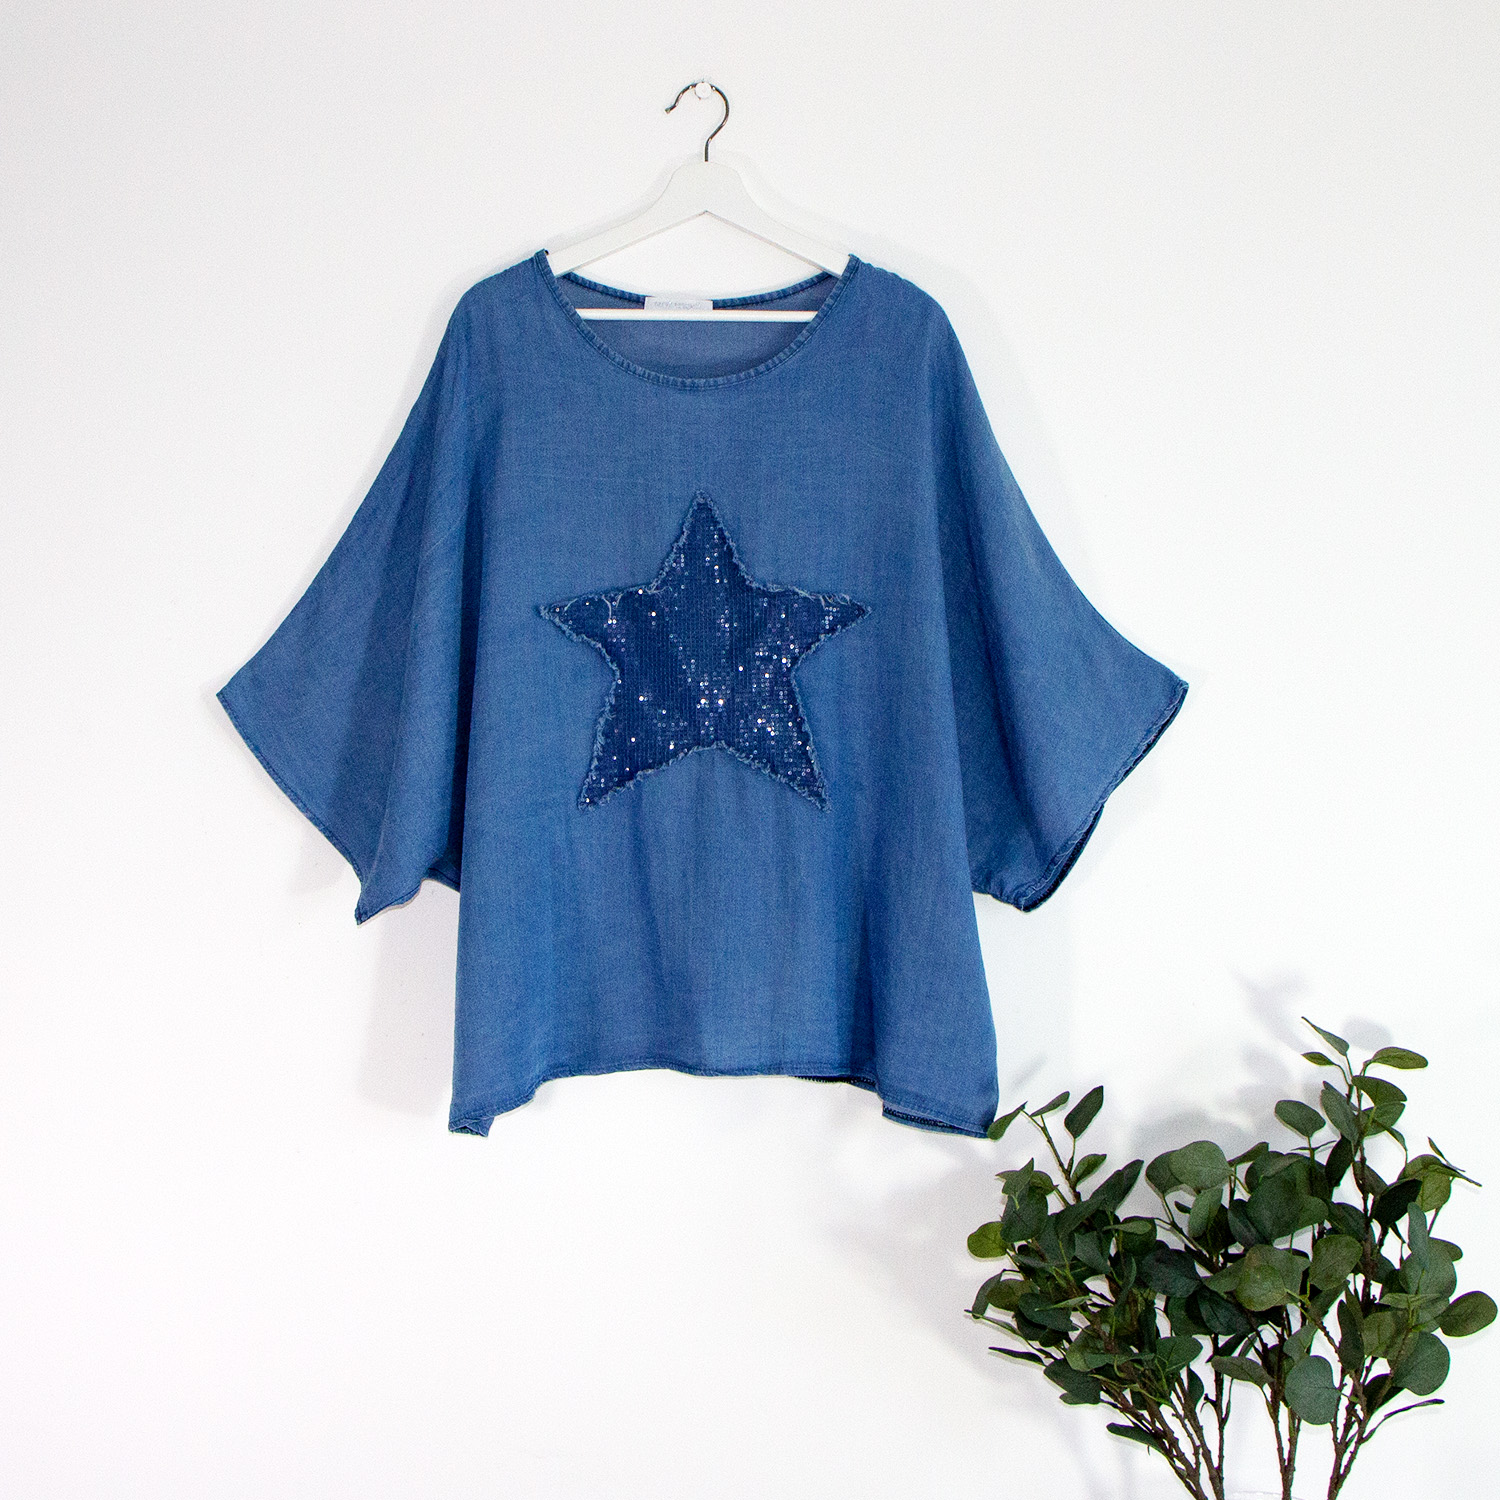 Jeans style tencel top with sequin star motif and frayed edge